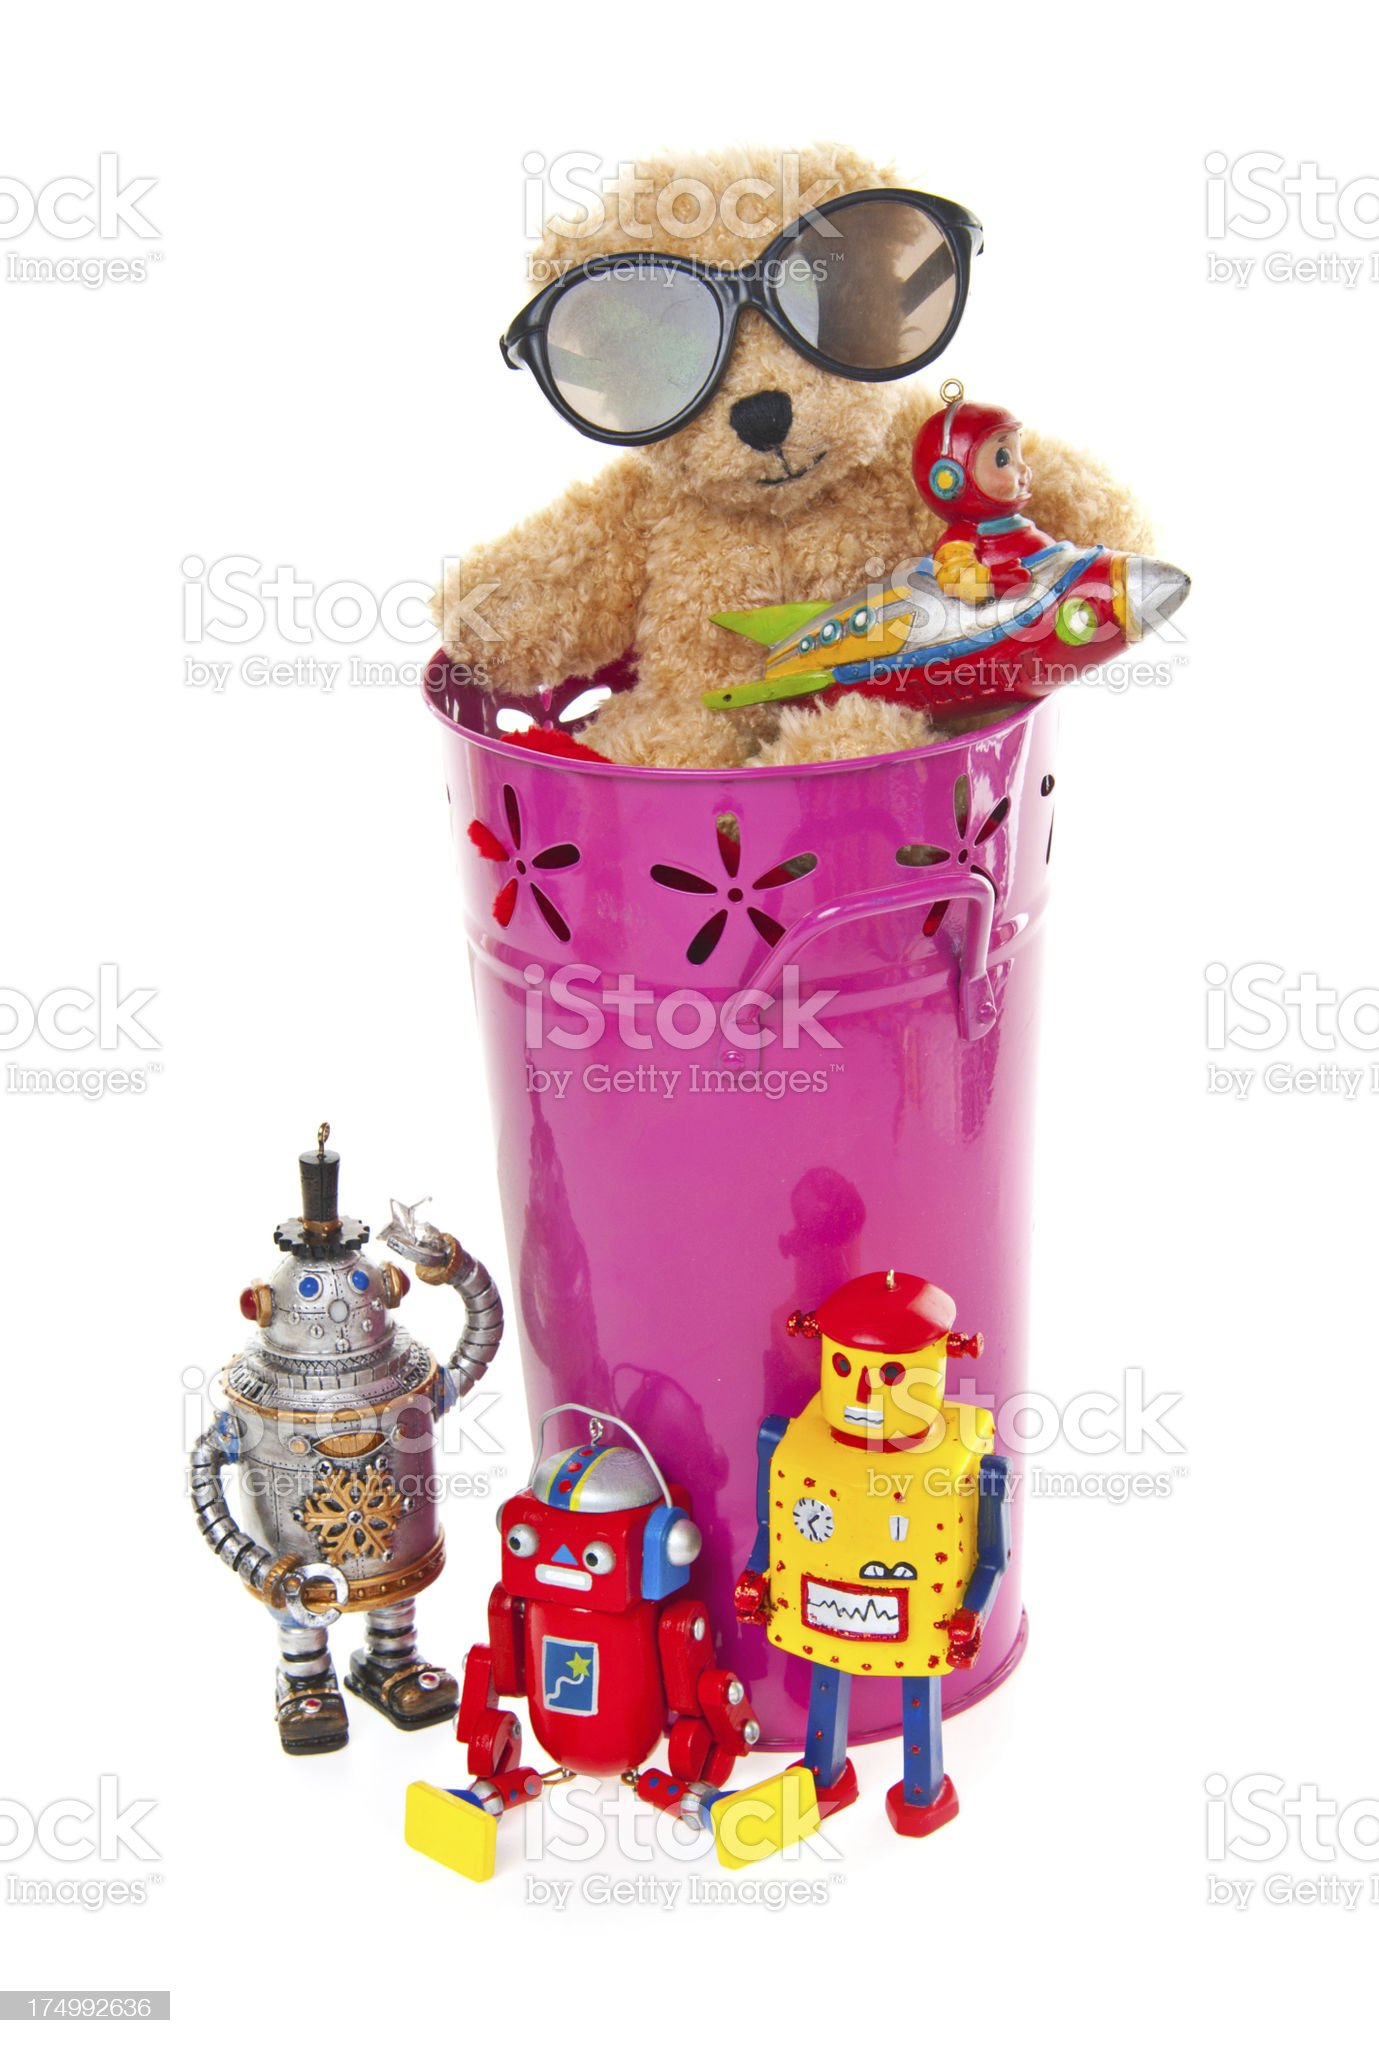 Teddy Bear, Robots and Toys in Pink Bucket royalty-free stock photo